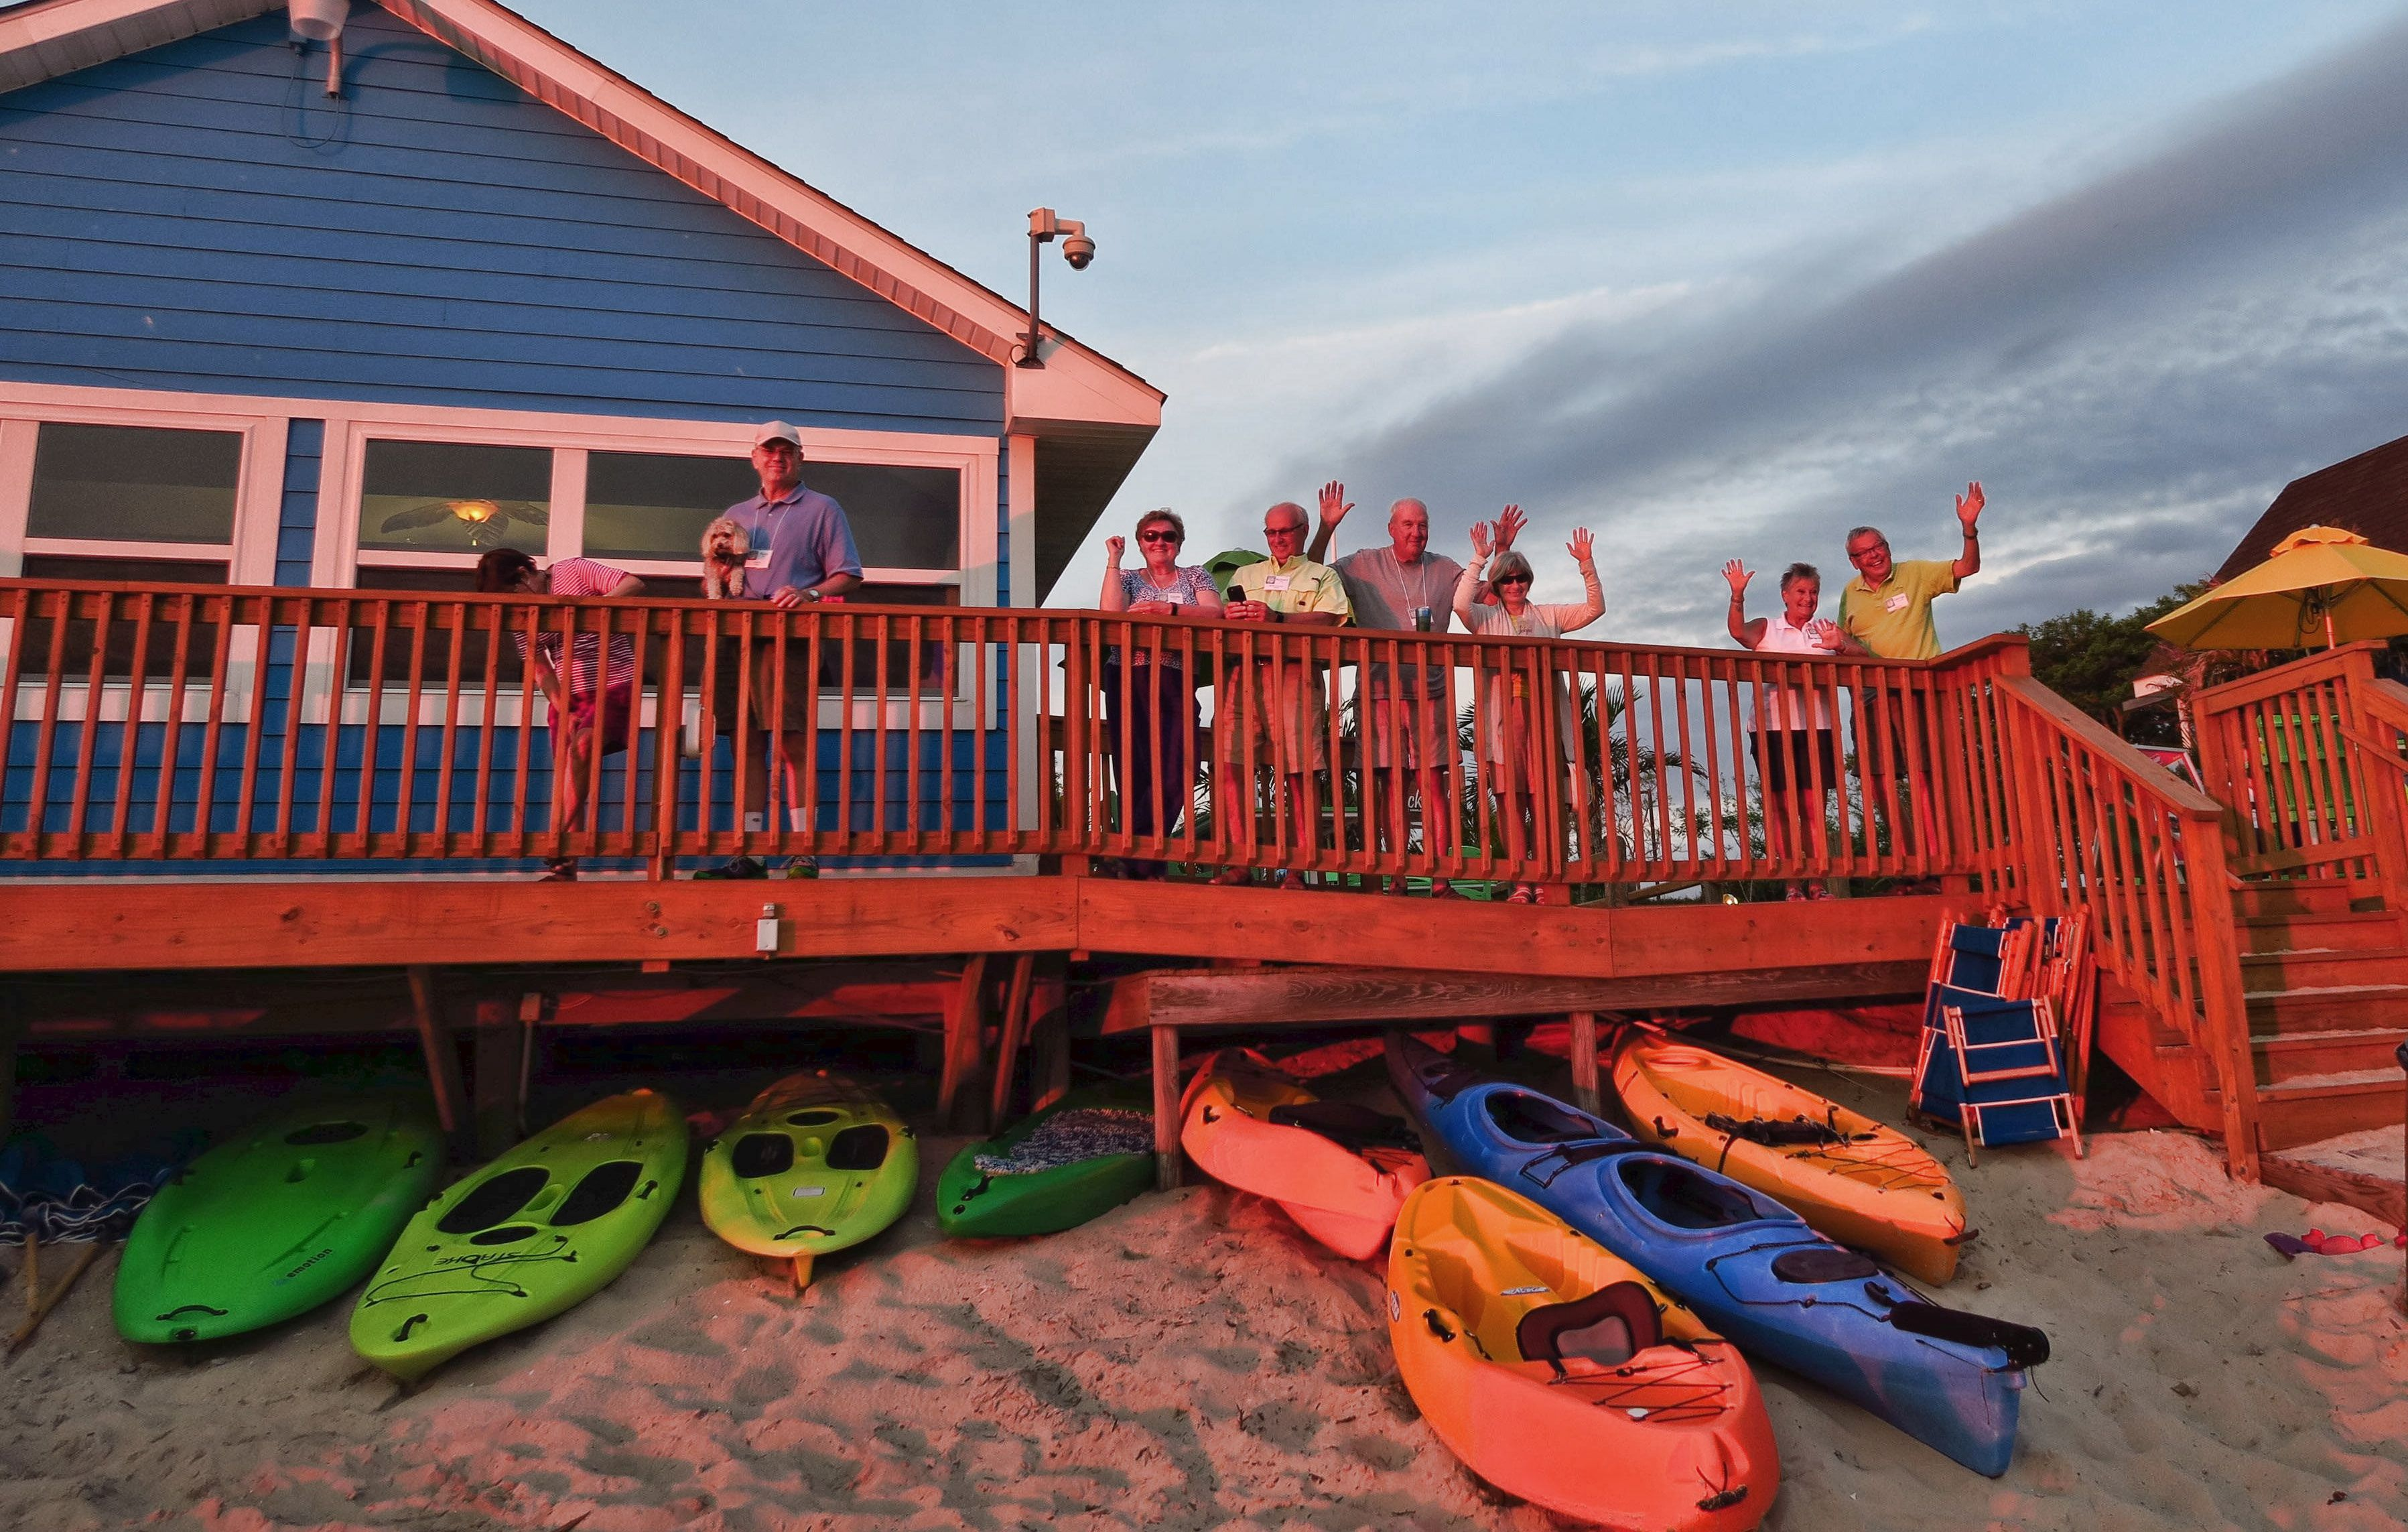 Sunset Beach RV Park has something for everyone, with kayaking, pool, and beachside restaurant.